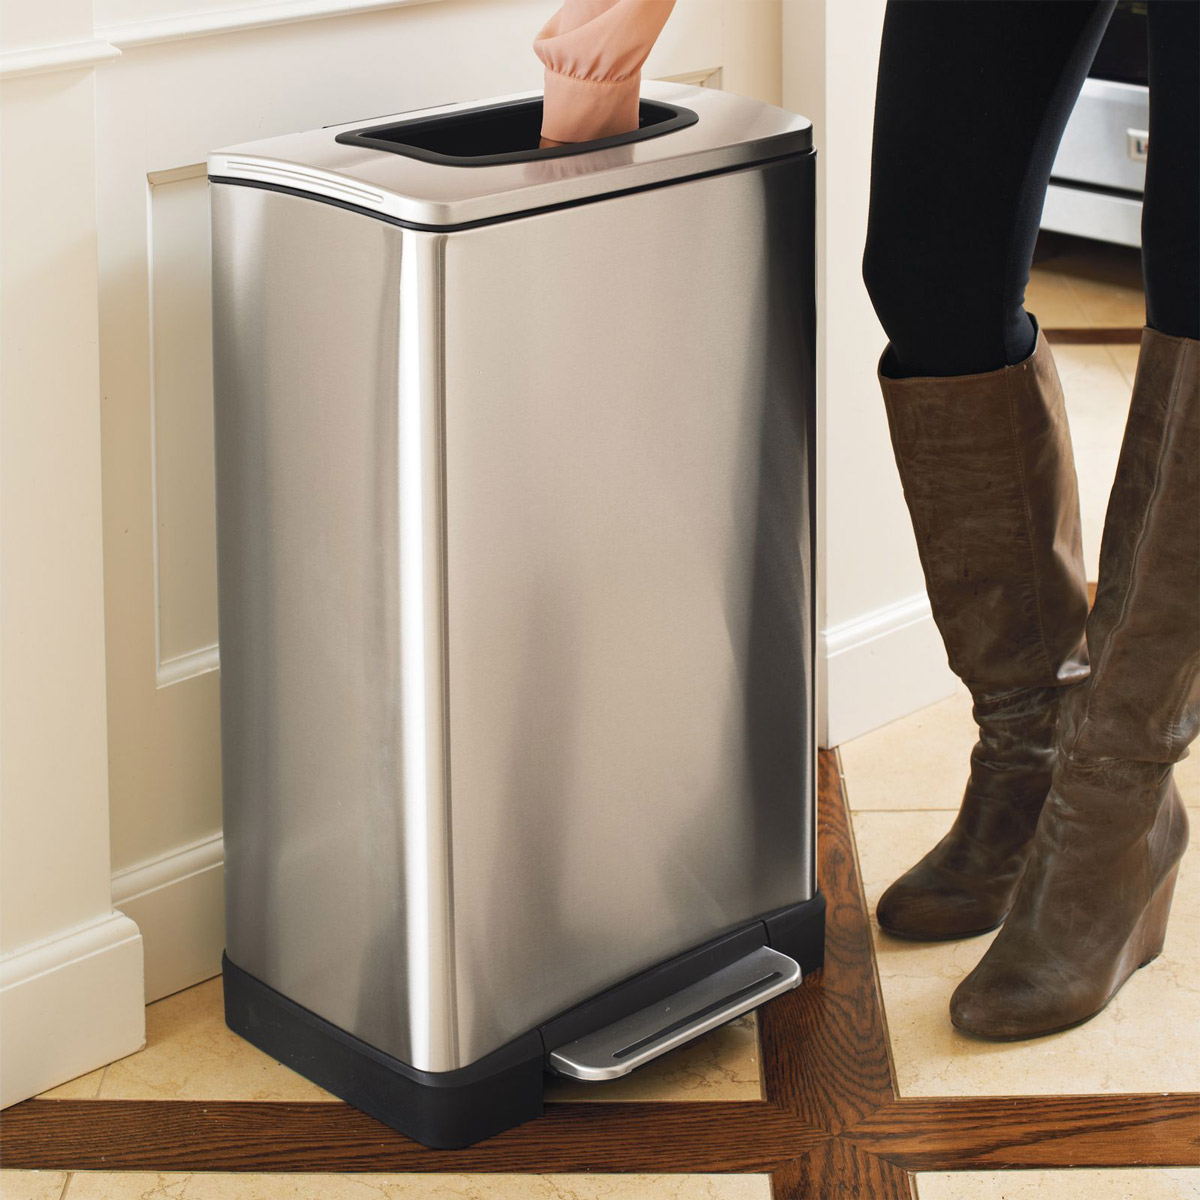 Trash Krusher - Trash Can With Built-In Manual Trash Compactor